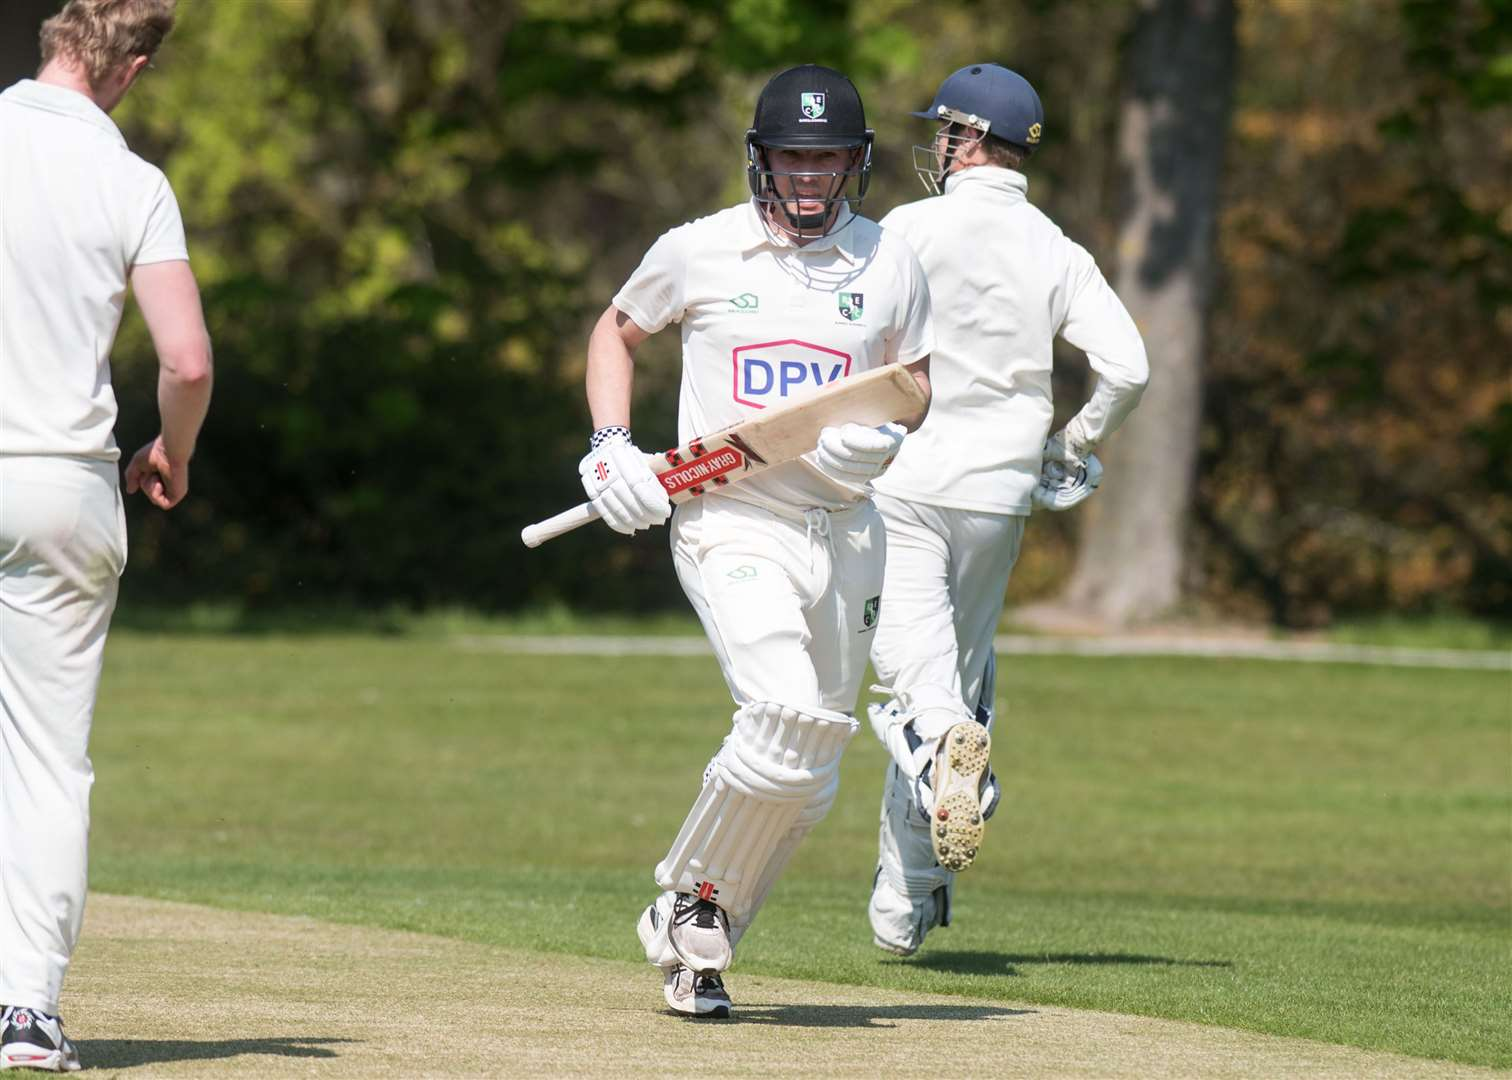 CRICKET: Burwell & Exning v Vauxhall Mallards Tim Catley scored 103 for B&E Picture by Mark Westley. (8955529)